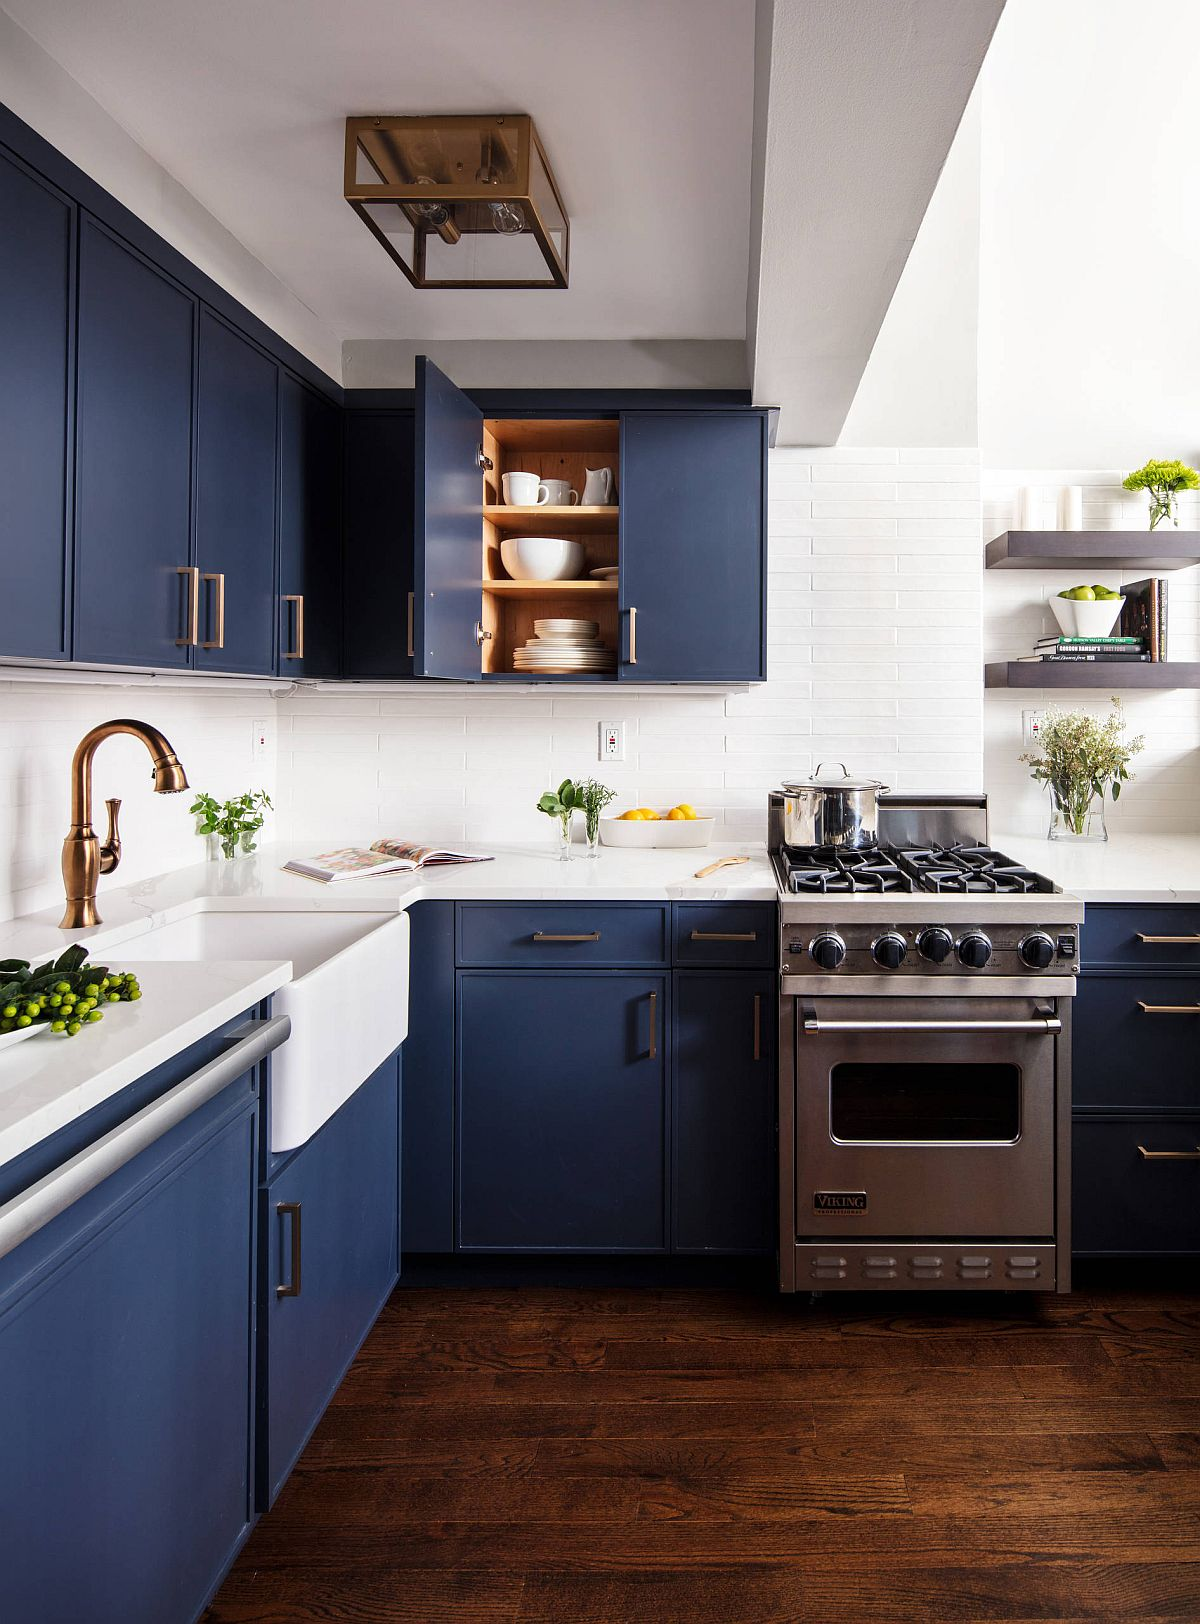 Cheerful-and-gorgeous-New-York-kitchen-in-white-with-dashing-deep-blue-cabinets-18551